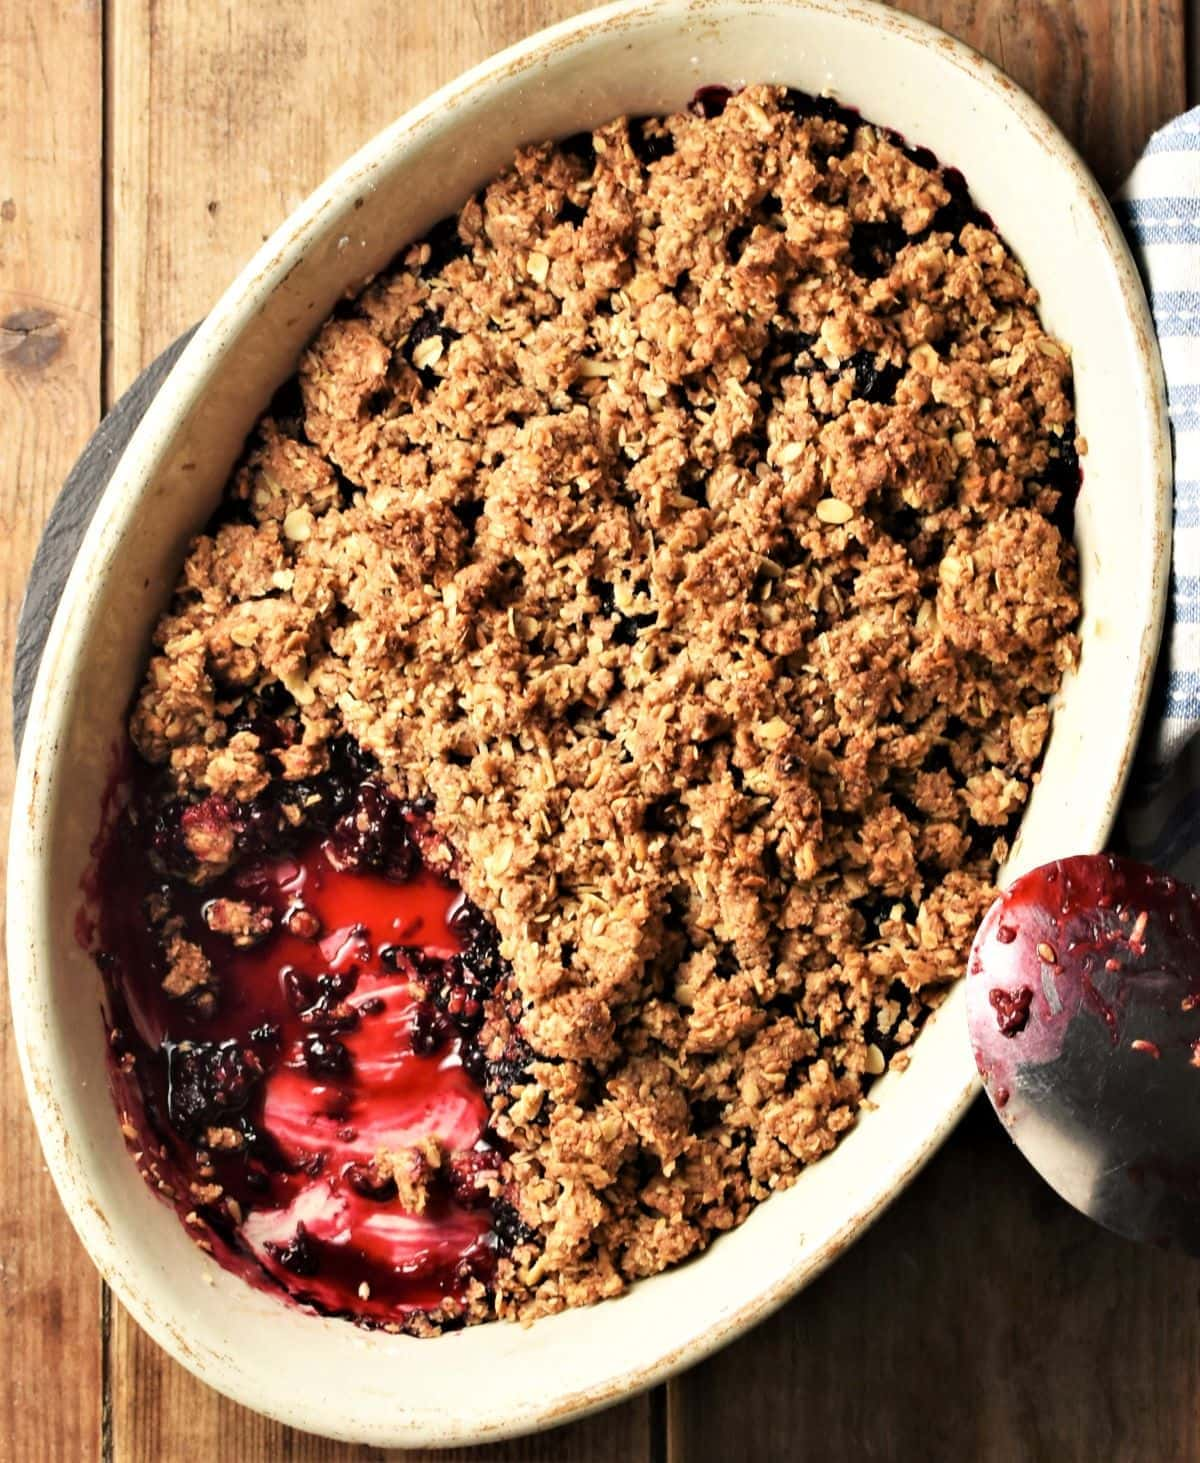 Top down view of blackberry crumble in white oval dish with spoon.